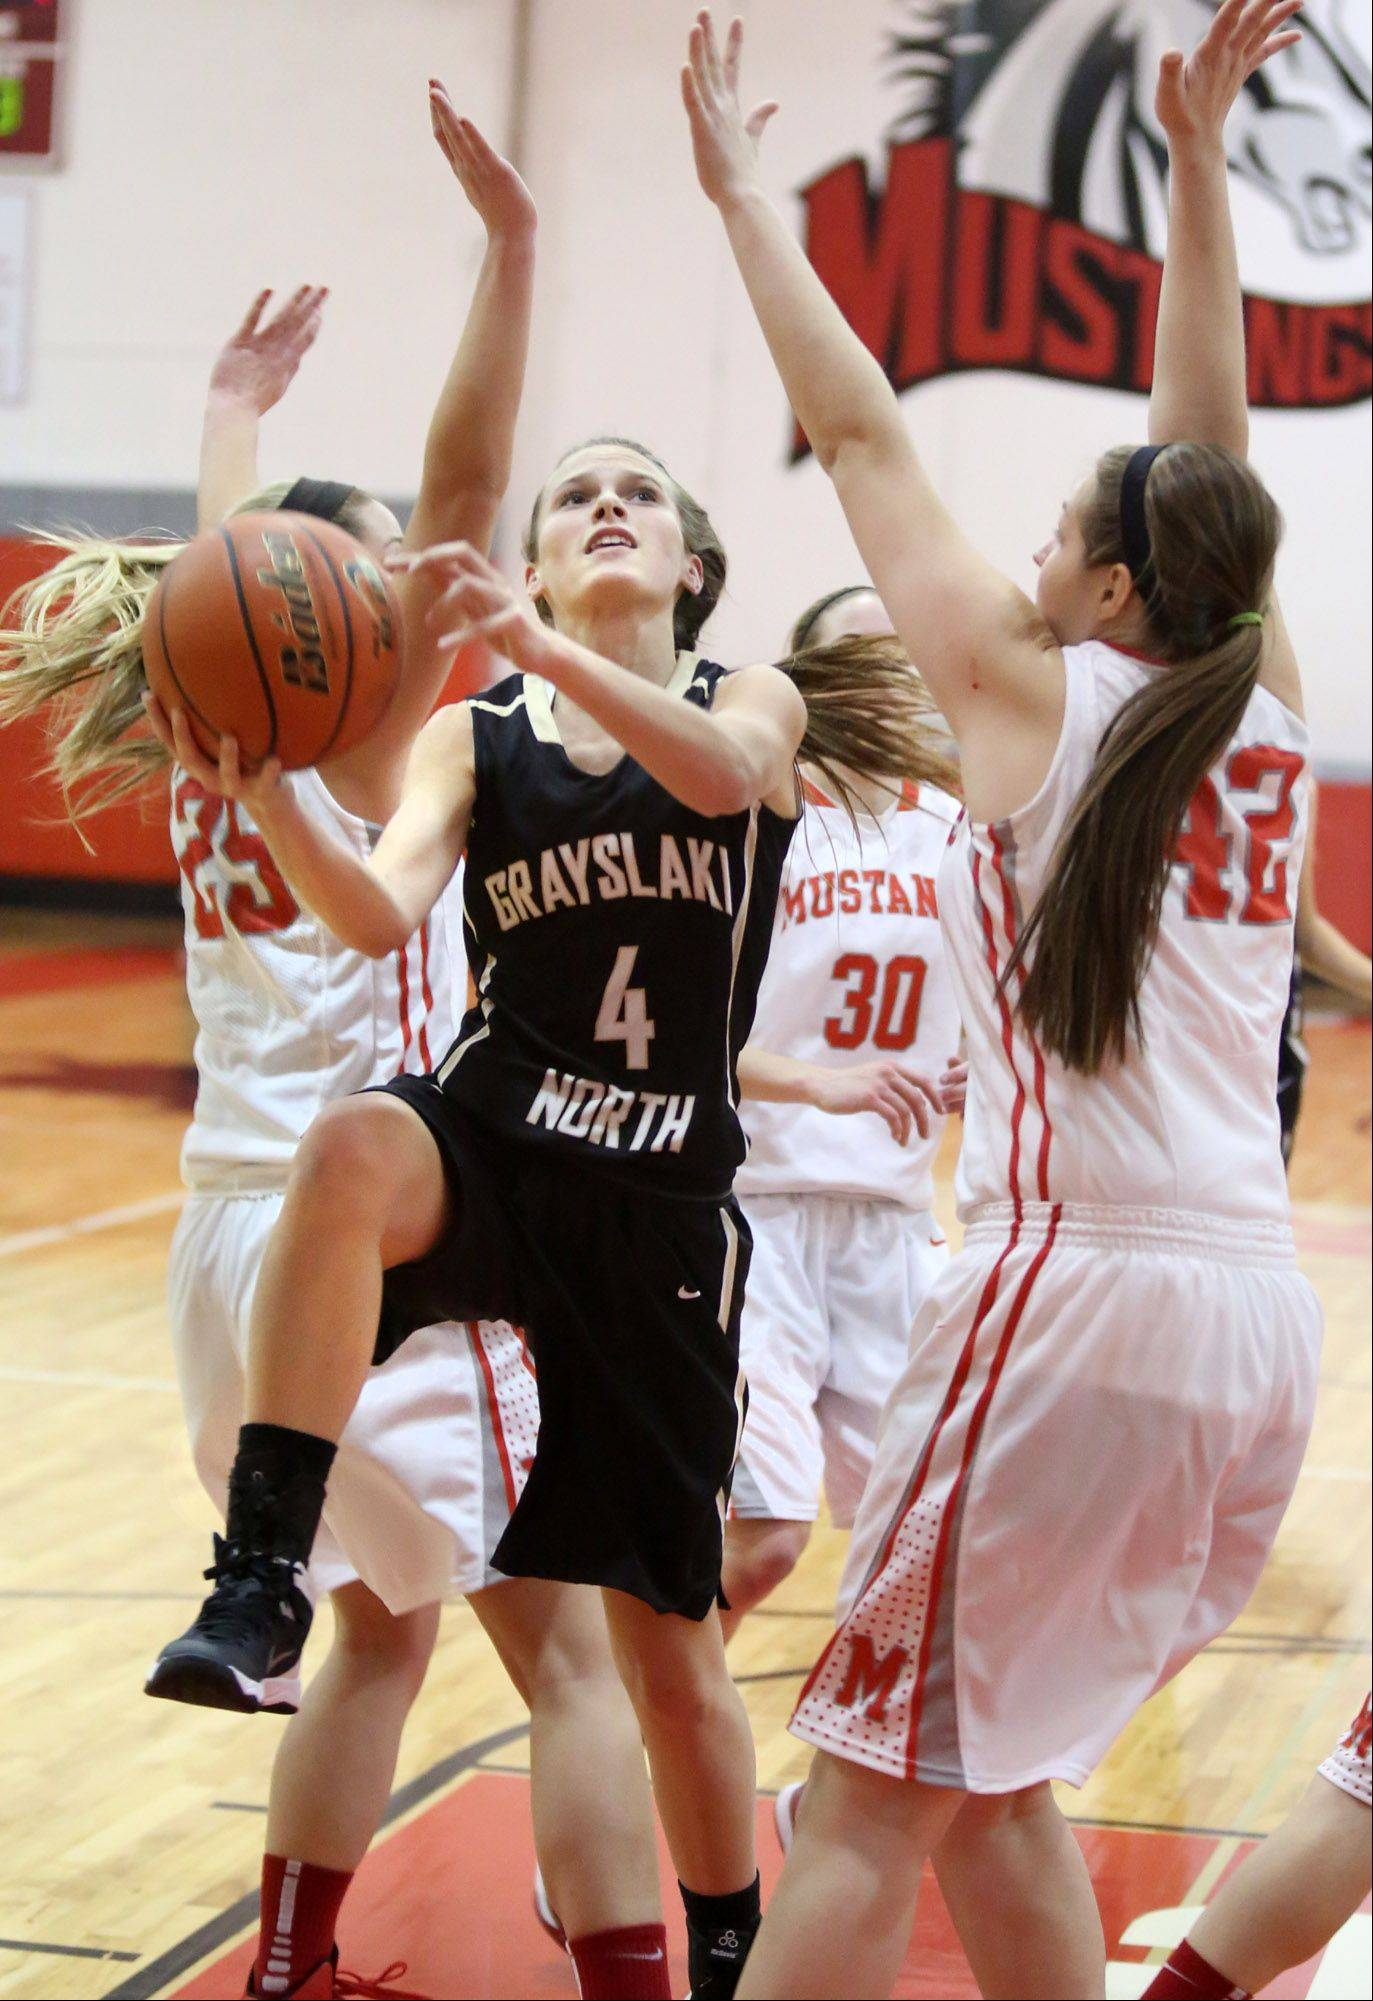 Grayslake North guard Maggie Fish splits three Mundelein defenders, including Taylor Lintner, right, at Mundelein on Friday.